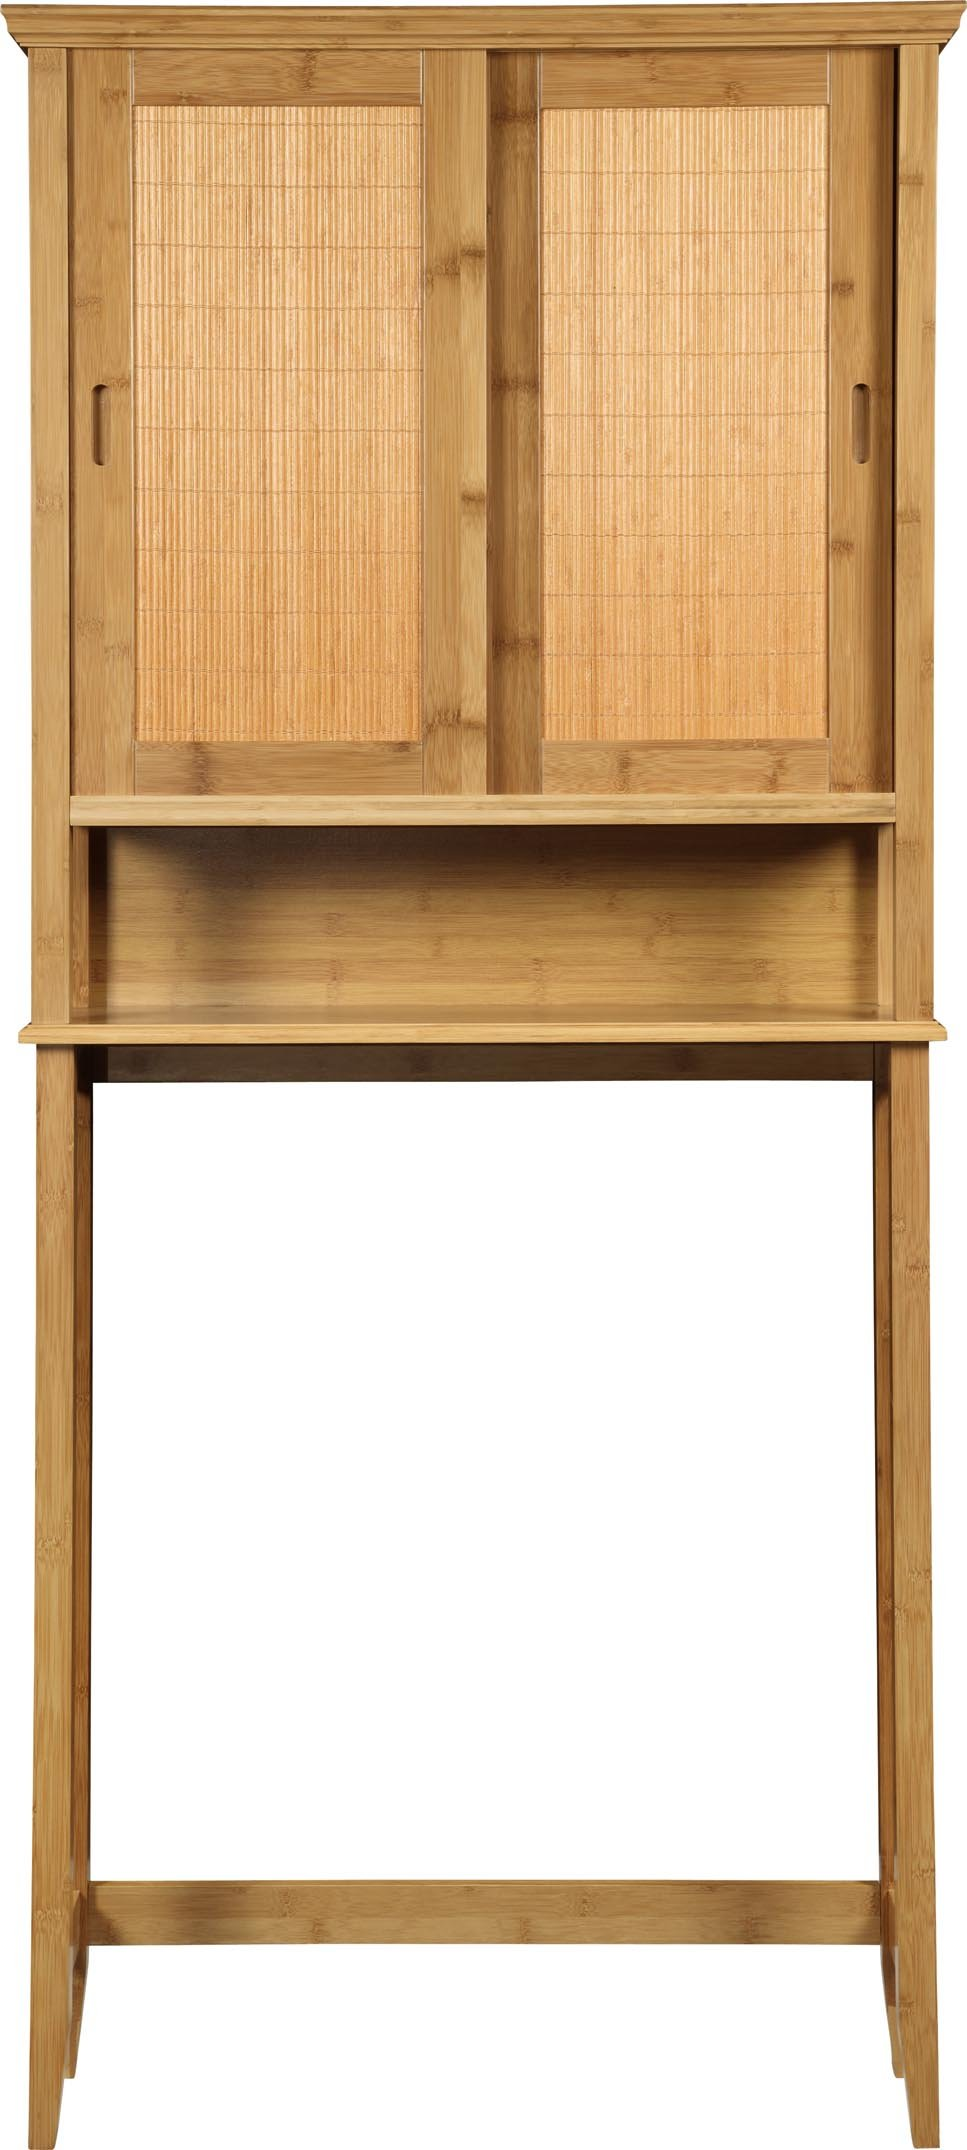 Altra 5326096 Space Saver, Bamboo by Altra